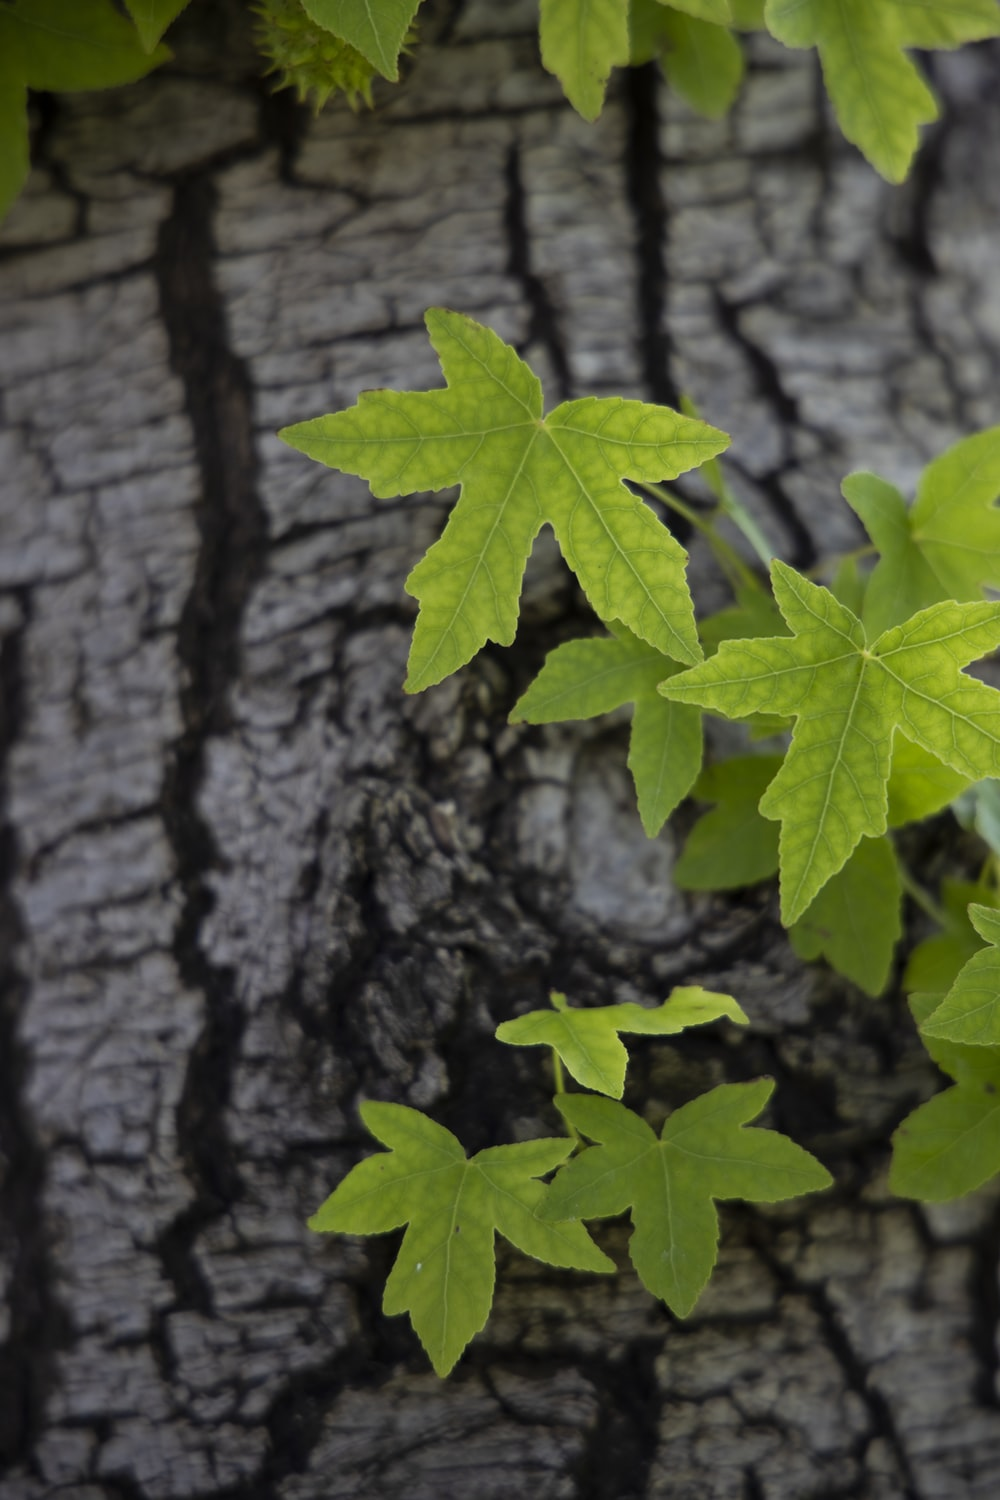 green maple leaf on brown tree trunk